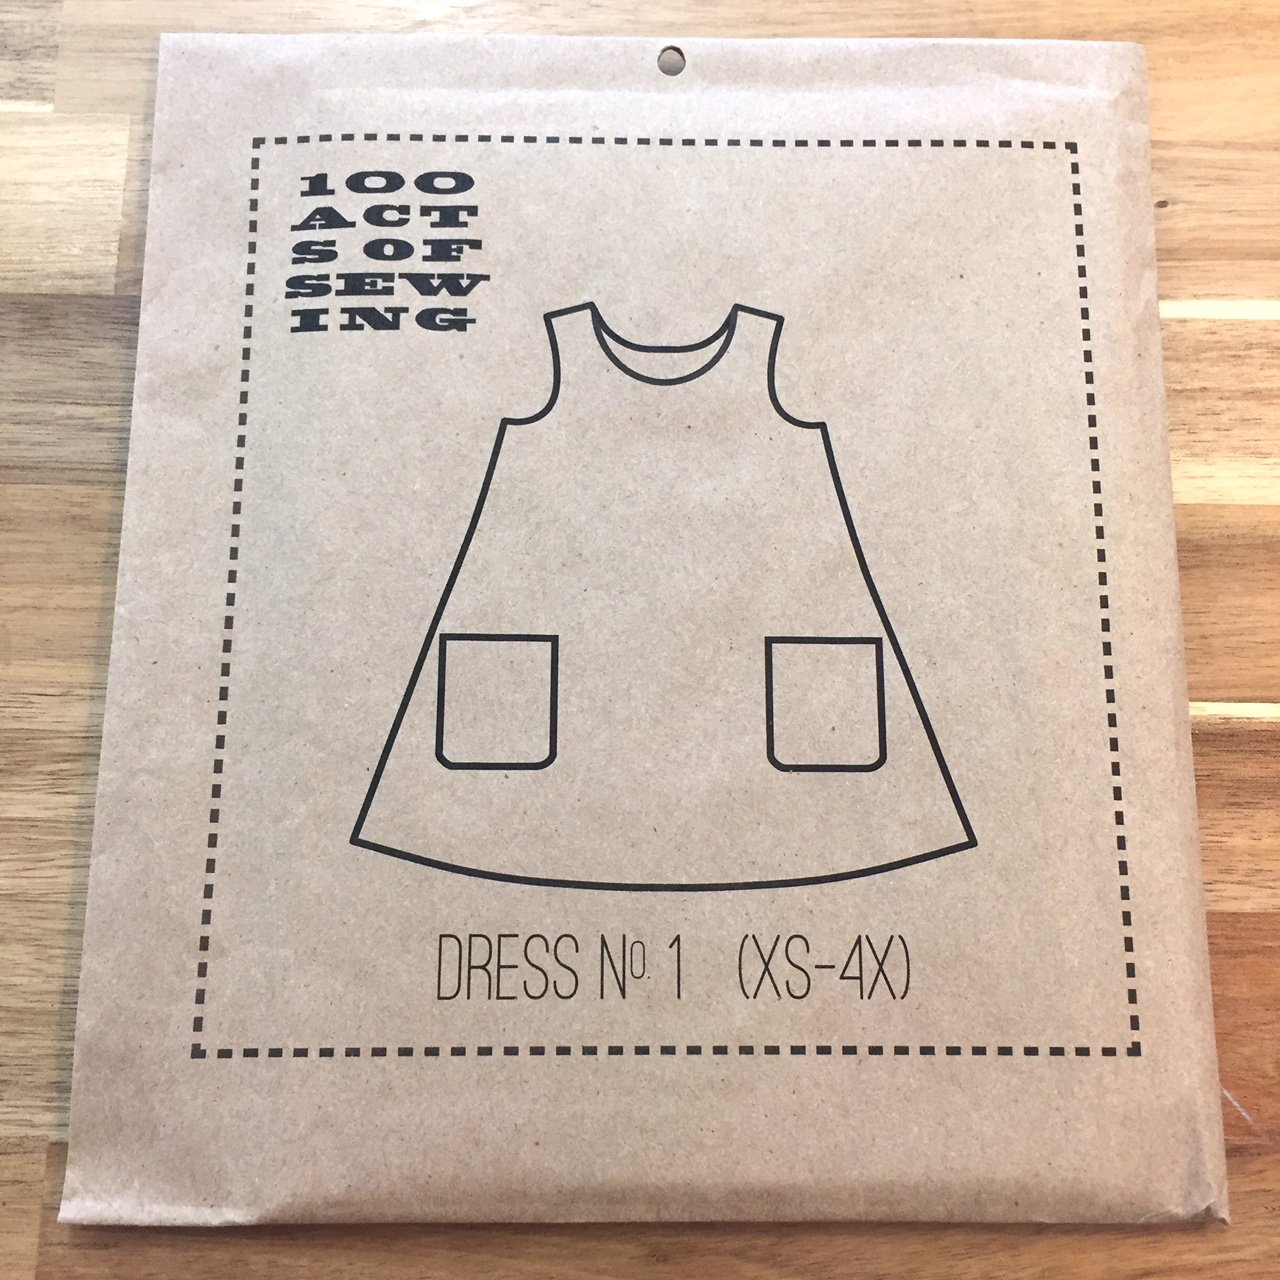 Dress no. 1 (XS-4X) - 100 Acts of Sewing - Sonya Philips